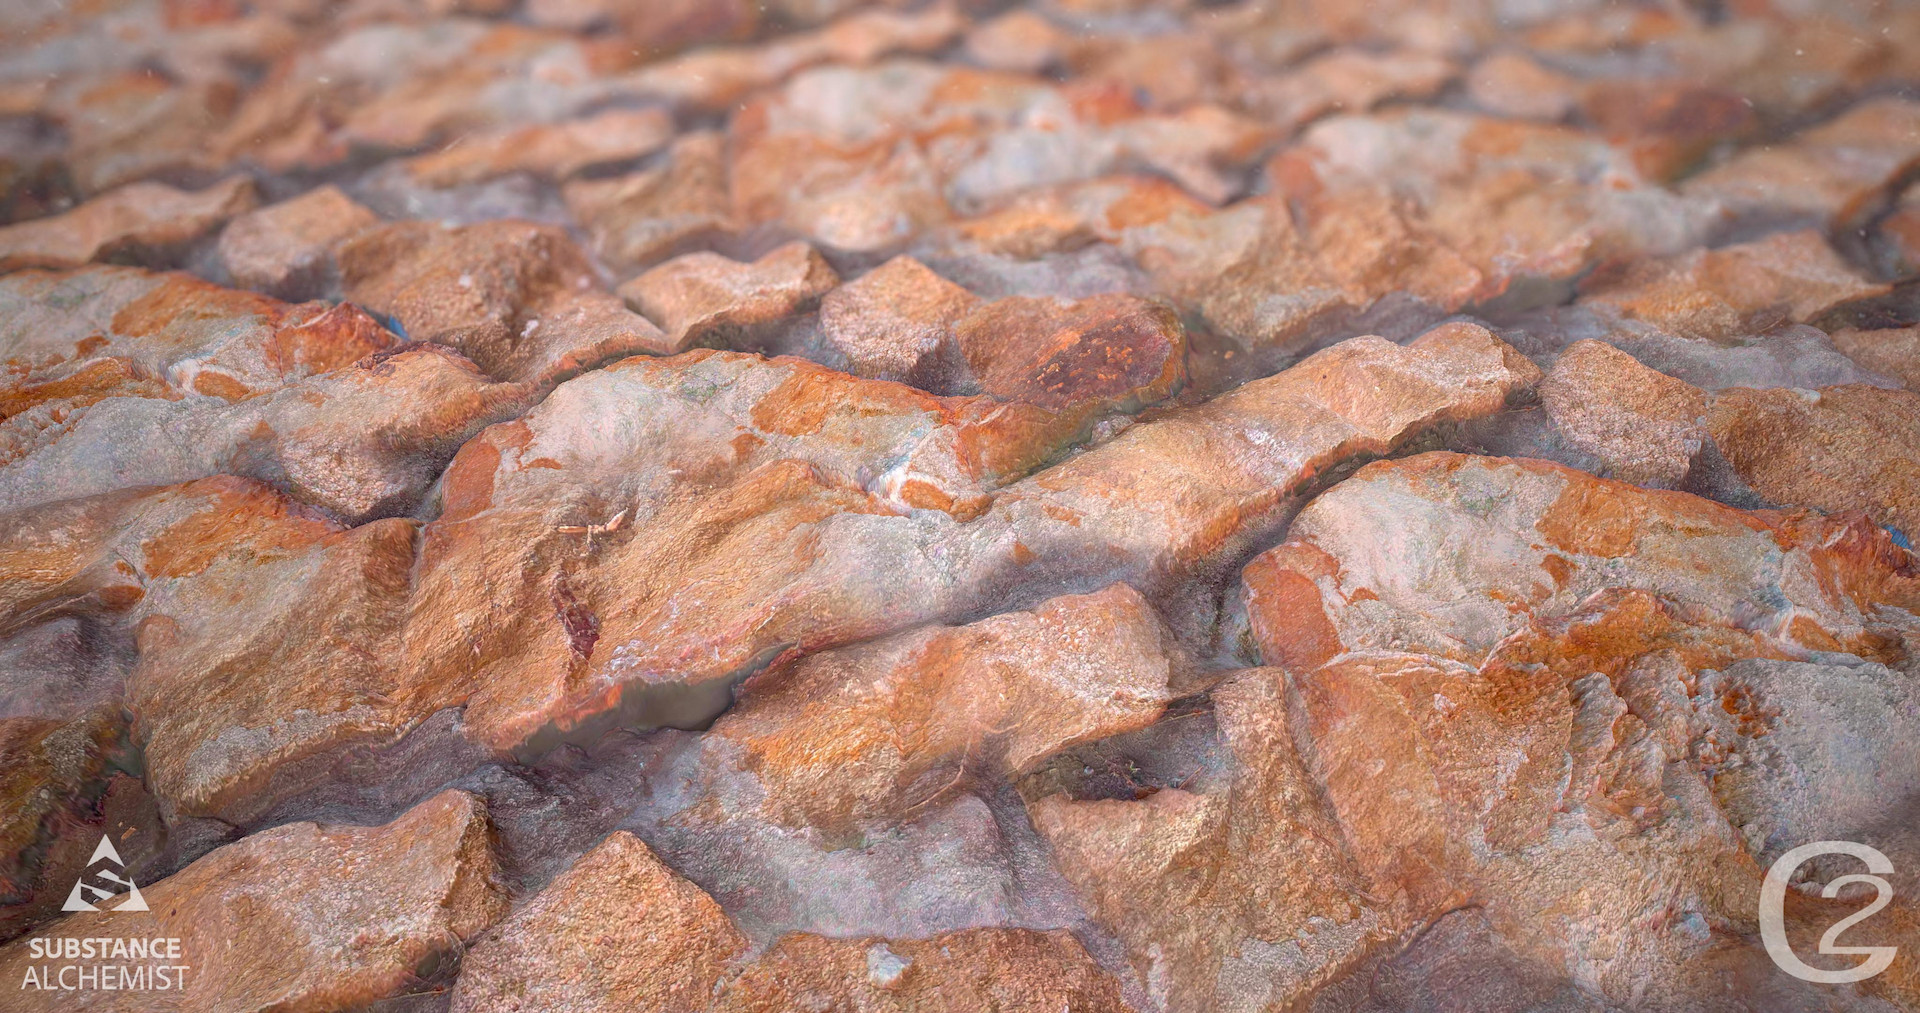 Close up of a red, rocky surface